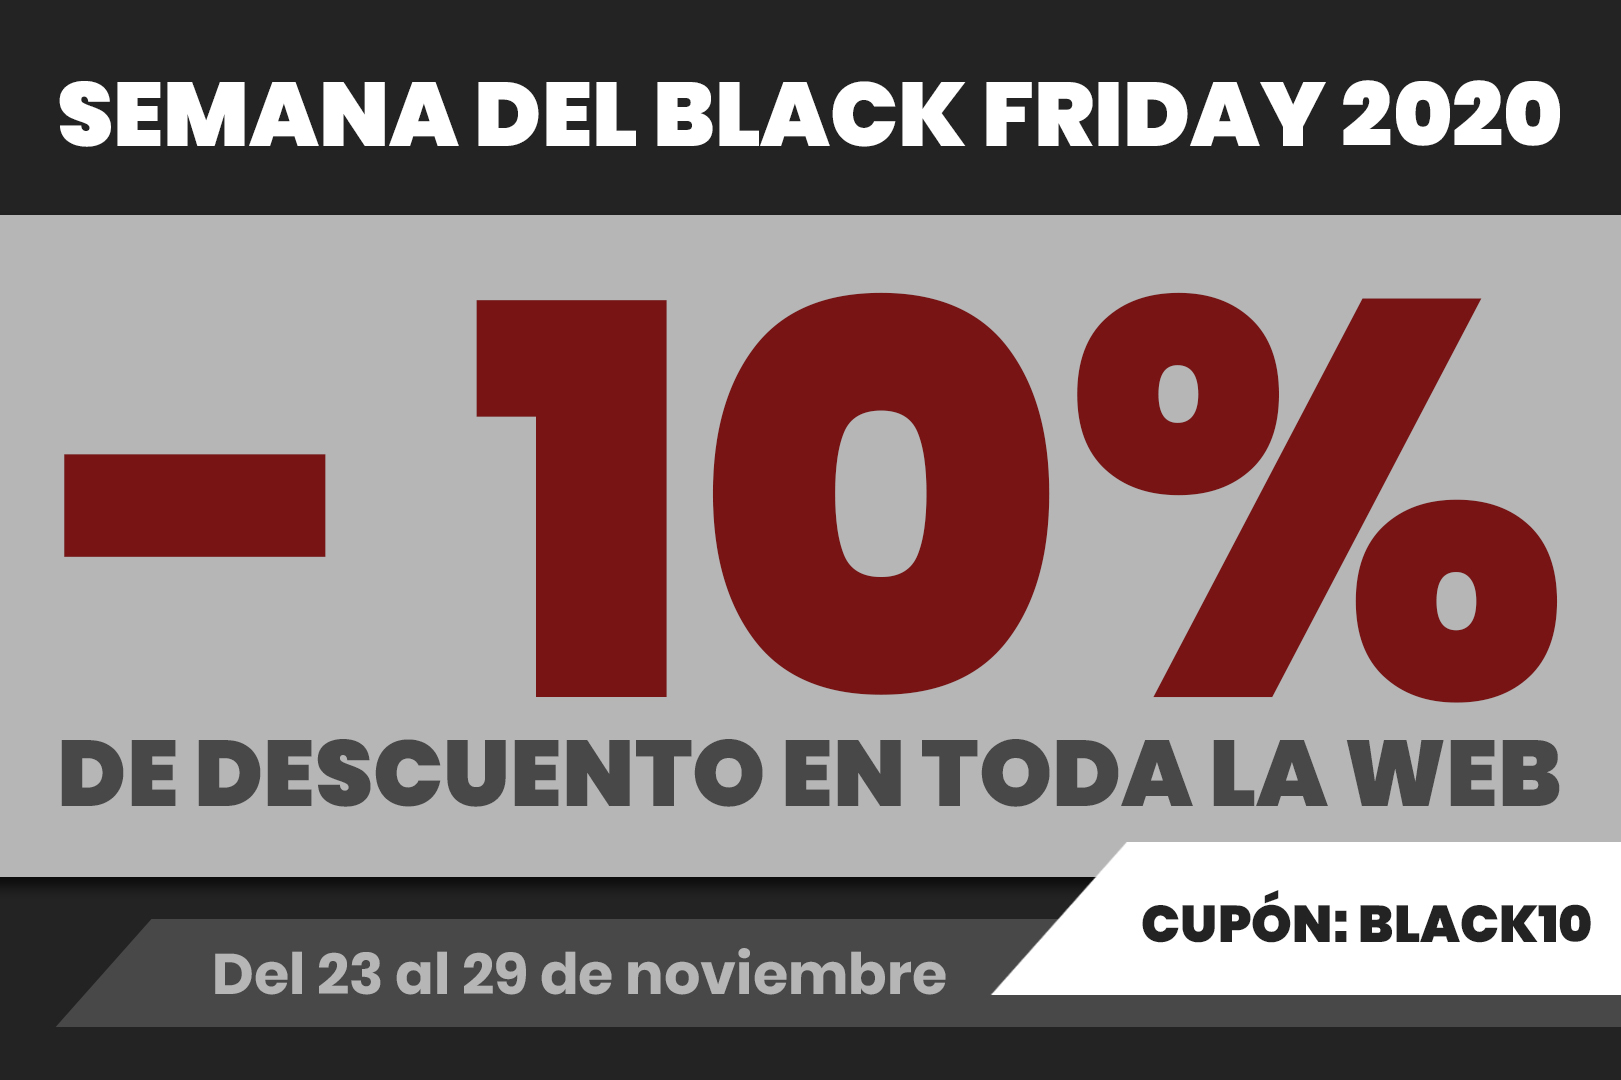 Semana del Black Friday 2020